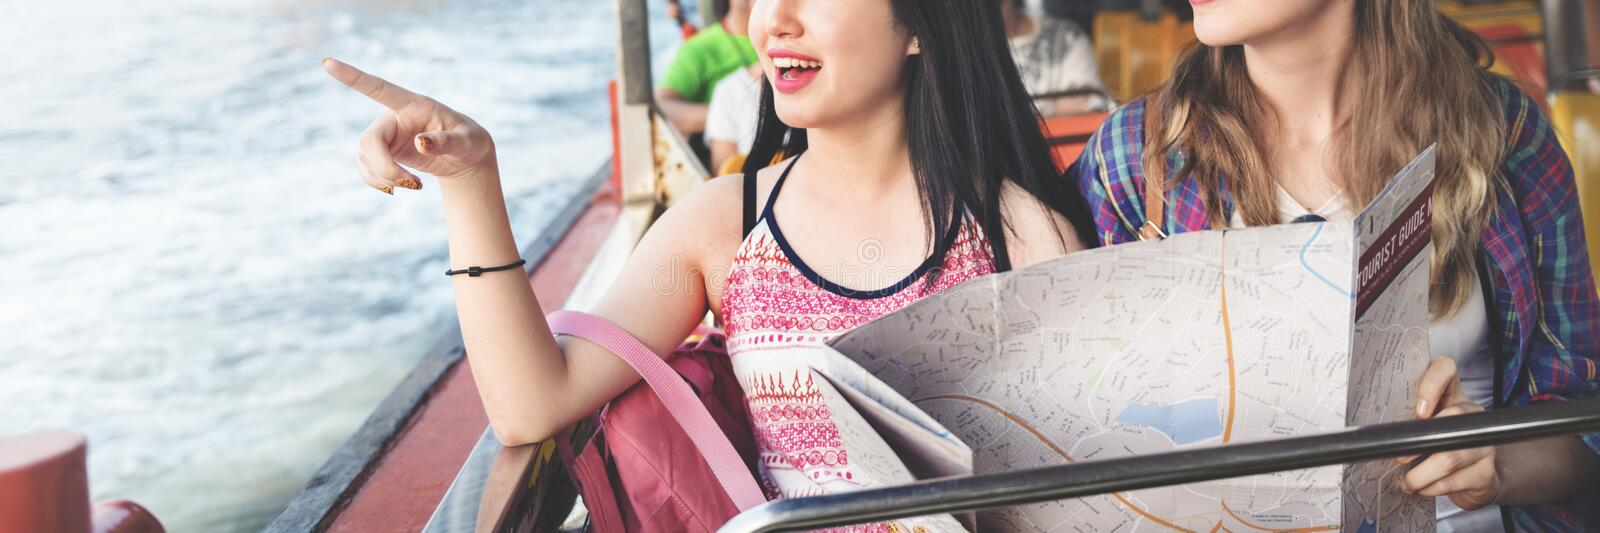 Girls Friendship Hangout Traveling Holiday Map Concept royalty free stock image